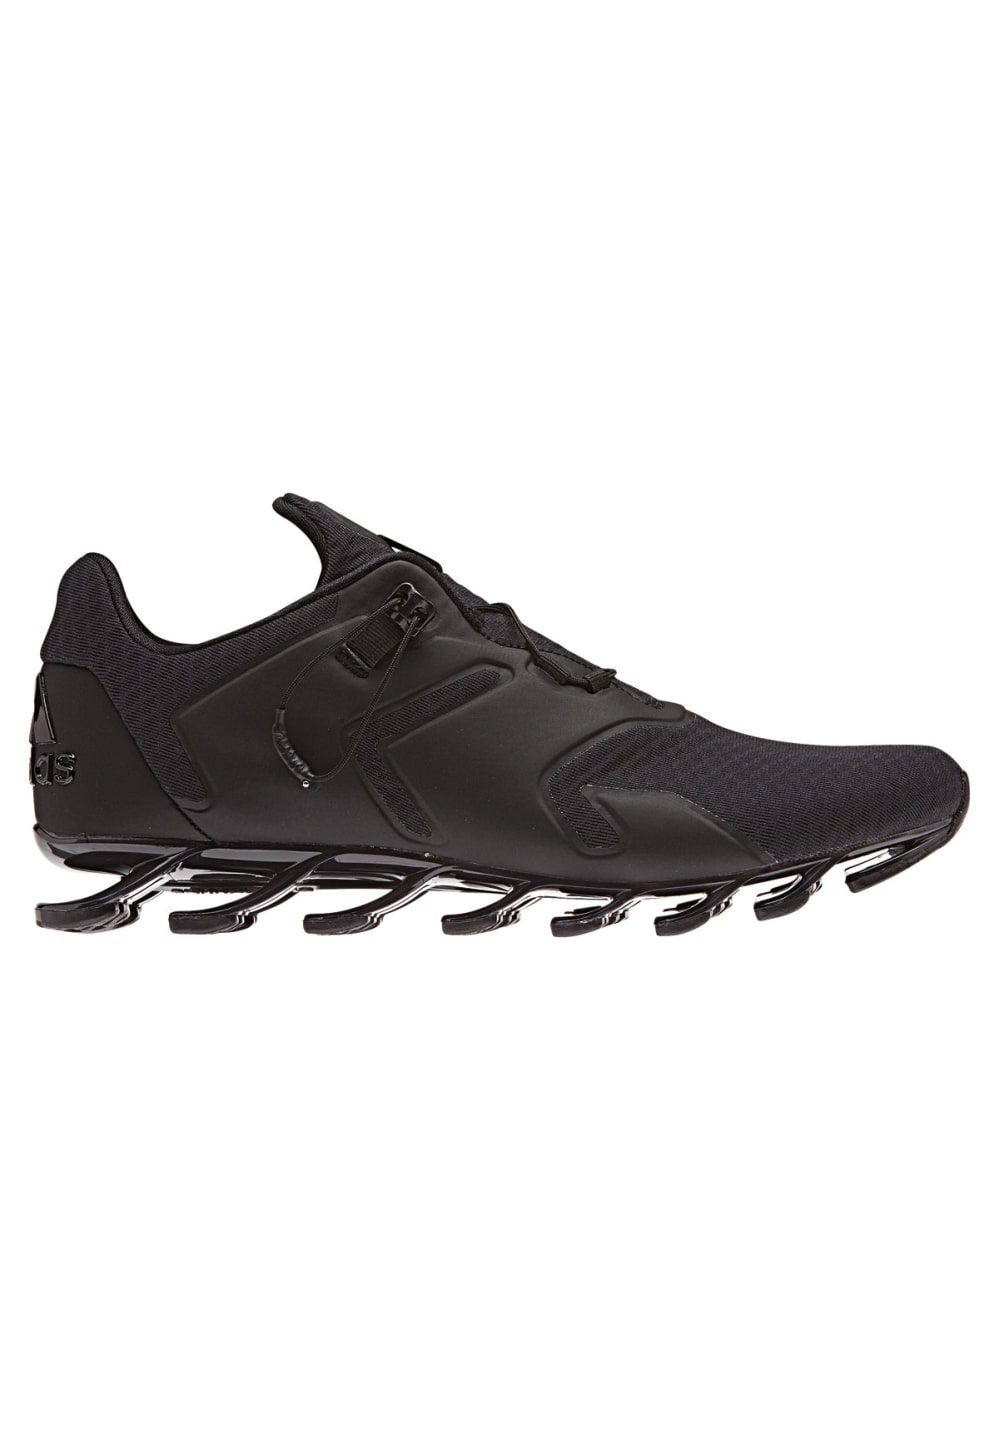 prix compétitif da1ac 12ad0 adidas Springblade Solyce - Running shoes for Men - Black